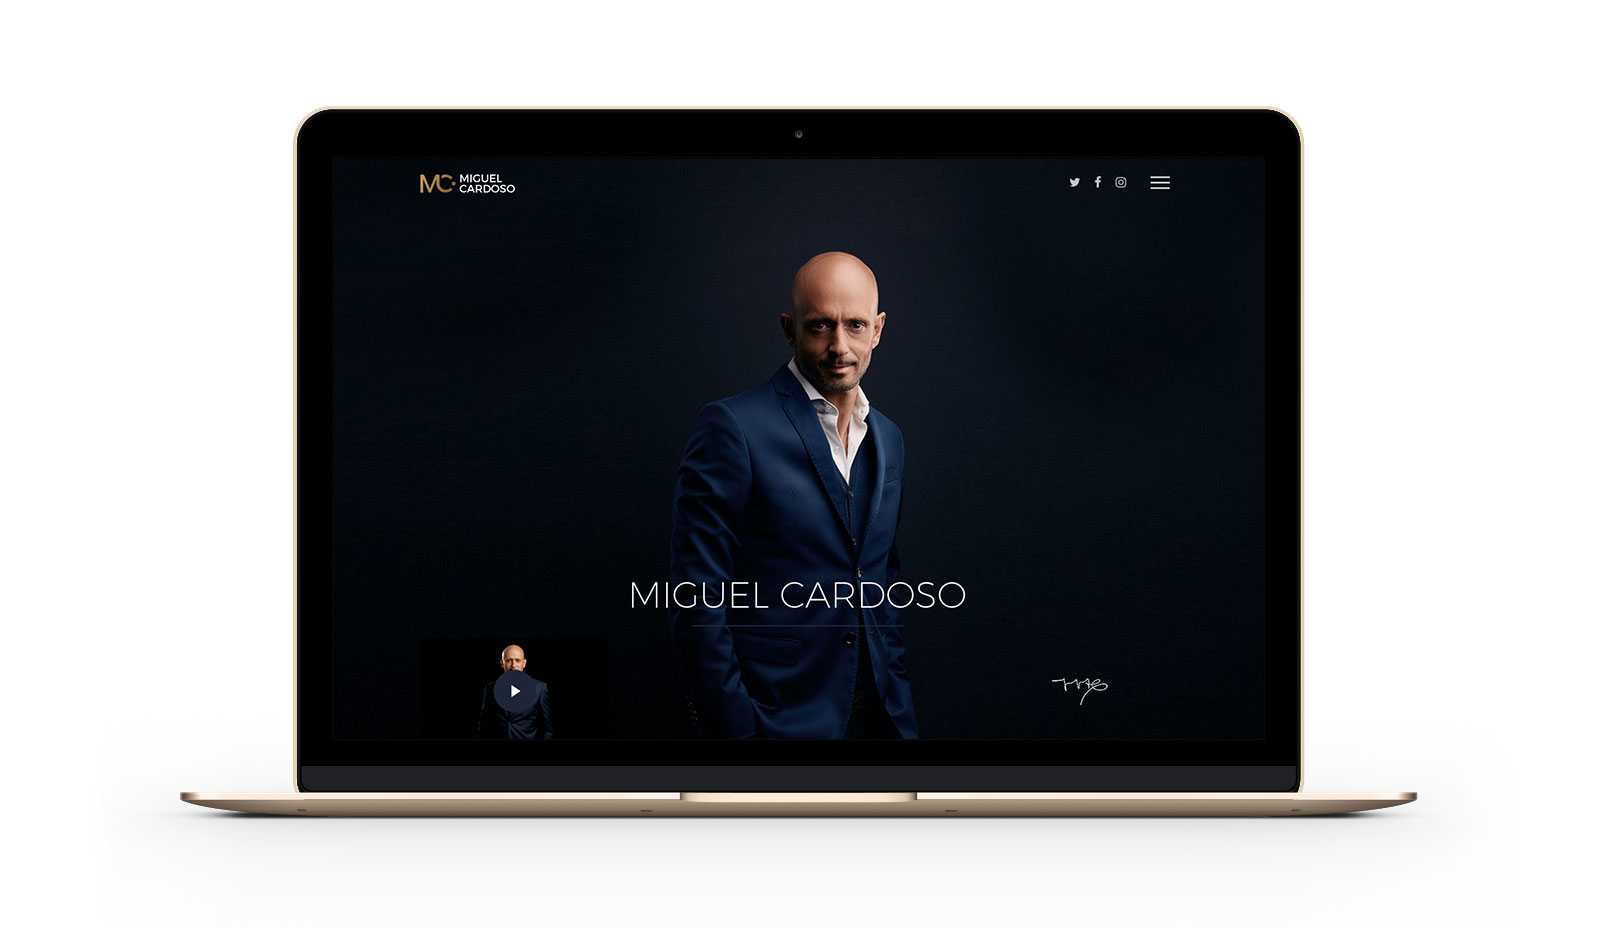 Miguel Cardoso Website - by branditnext